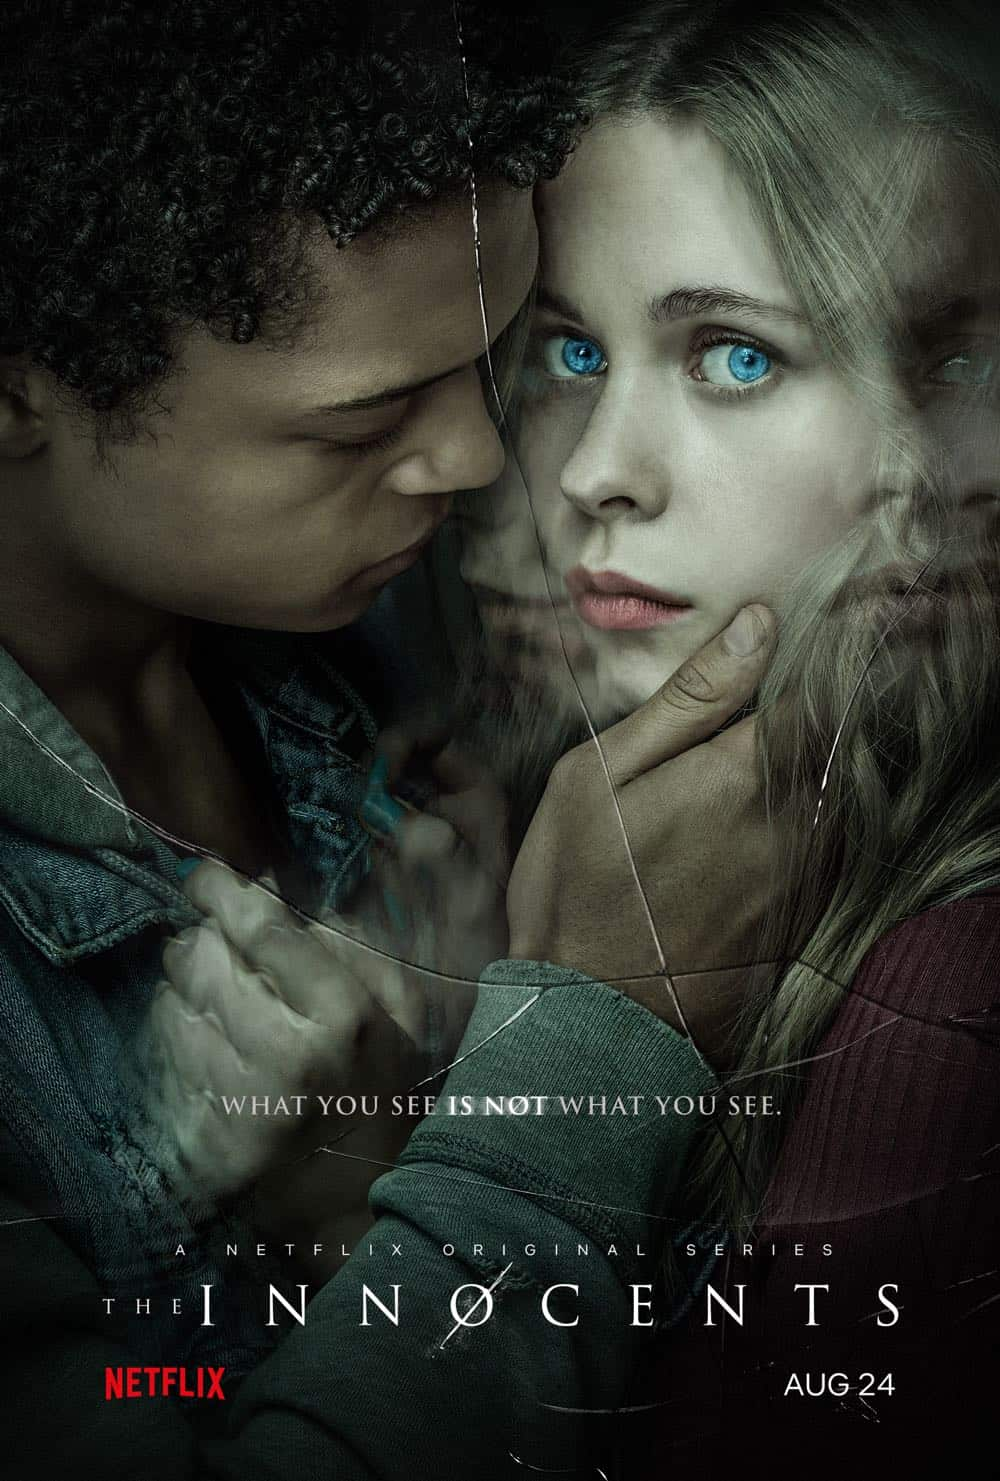 The Innocents Season 1 Poster Key Art